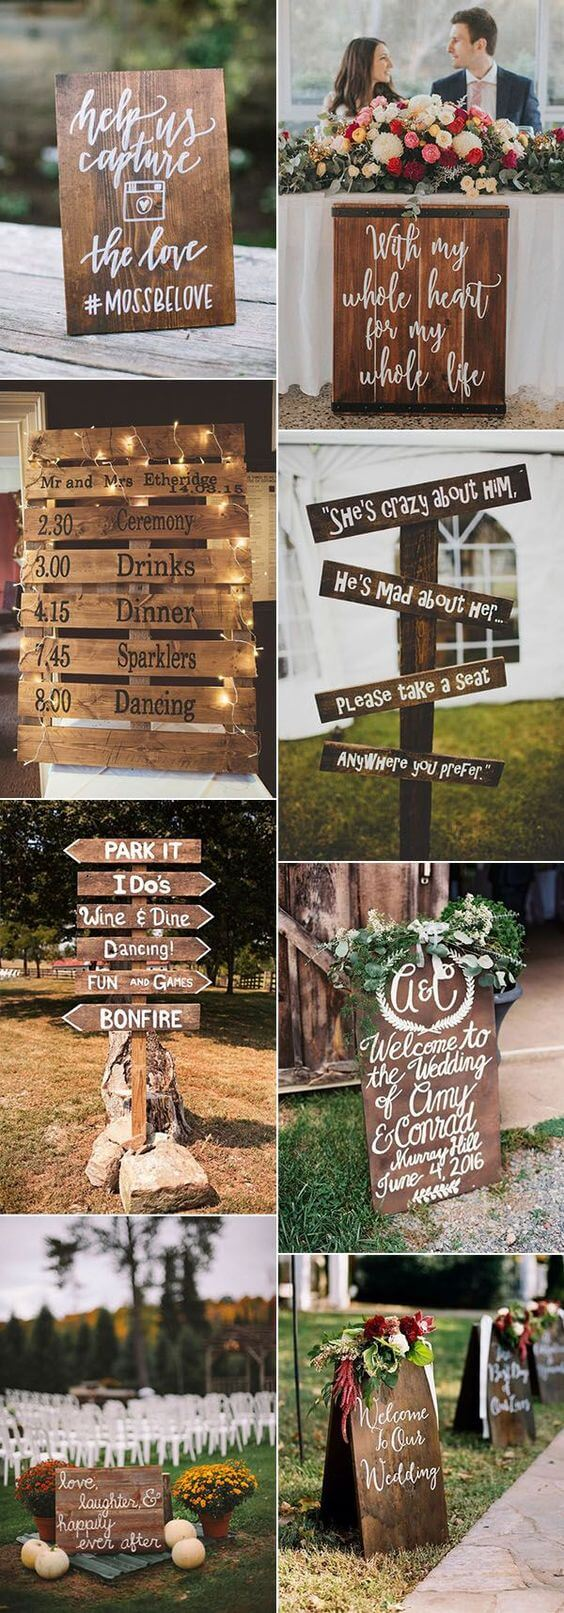 Welcome sign ideas for wedding | Creative & Rustic Backyard Wedding Ideas For Summer & Fall